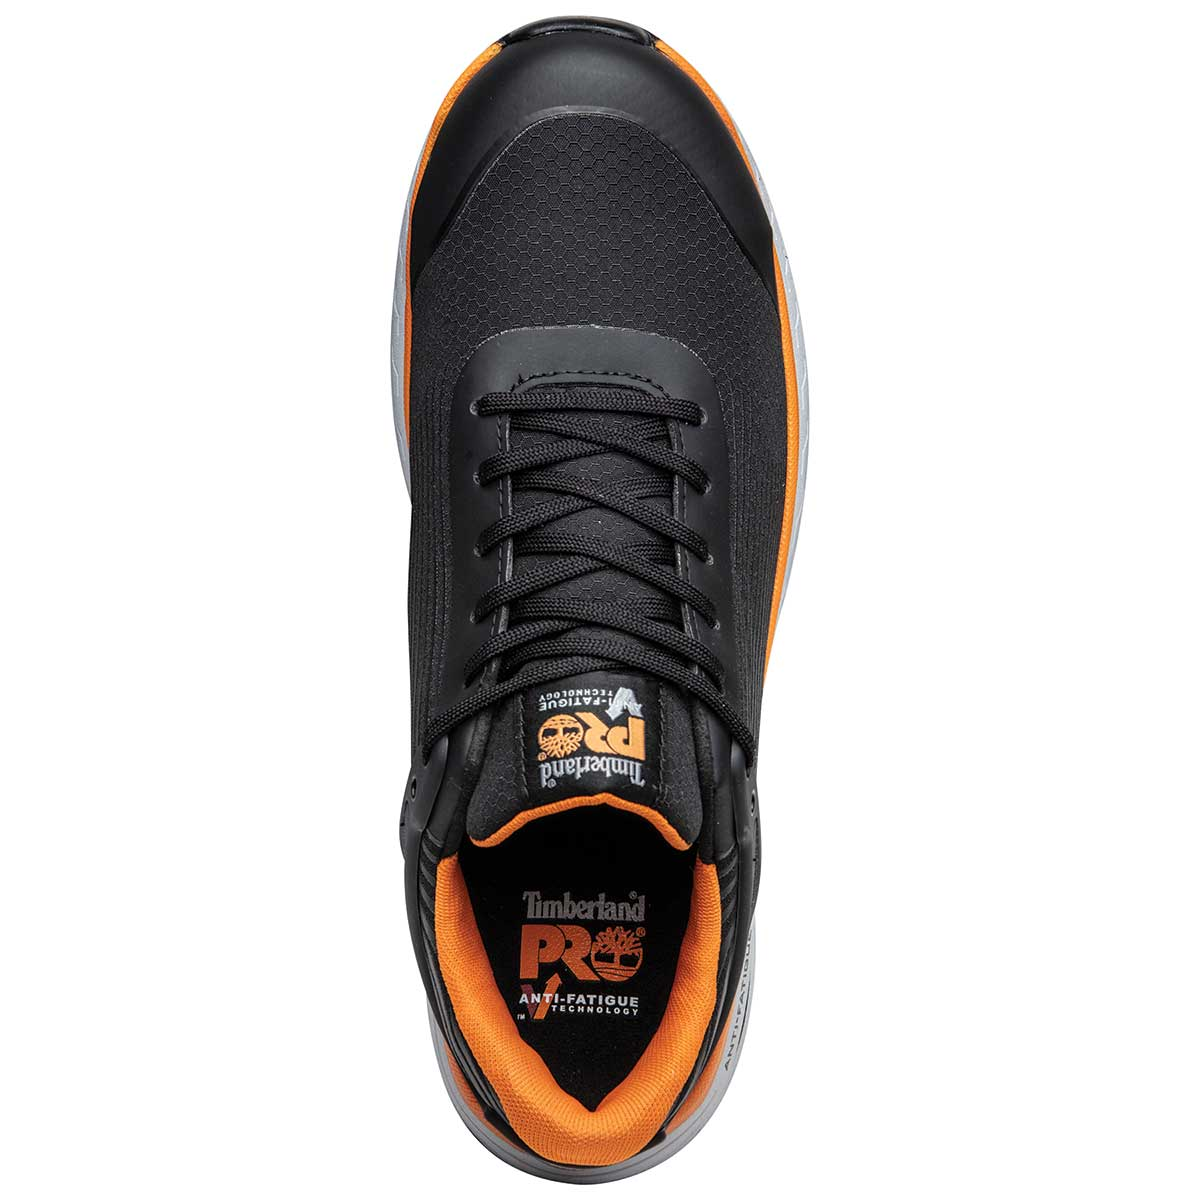 Timberland Pro Men's Drivetrain Work Shoe